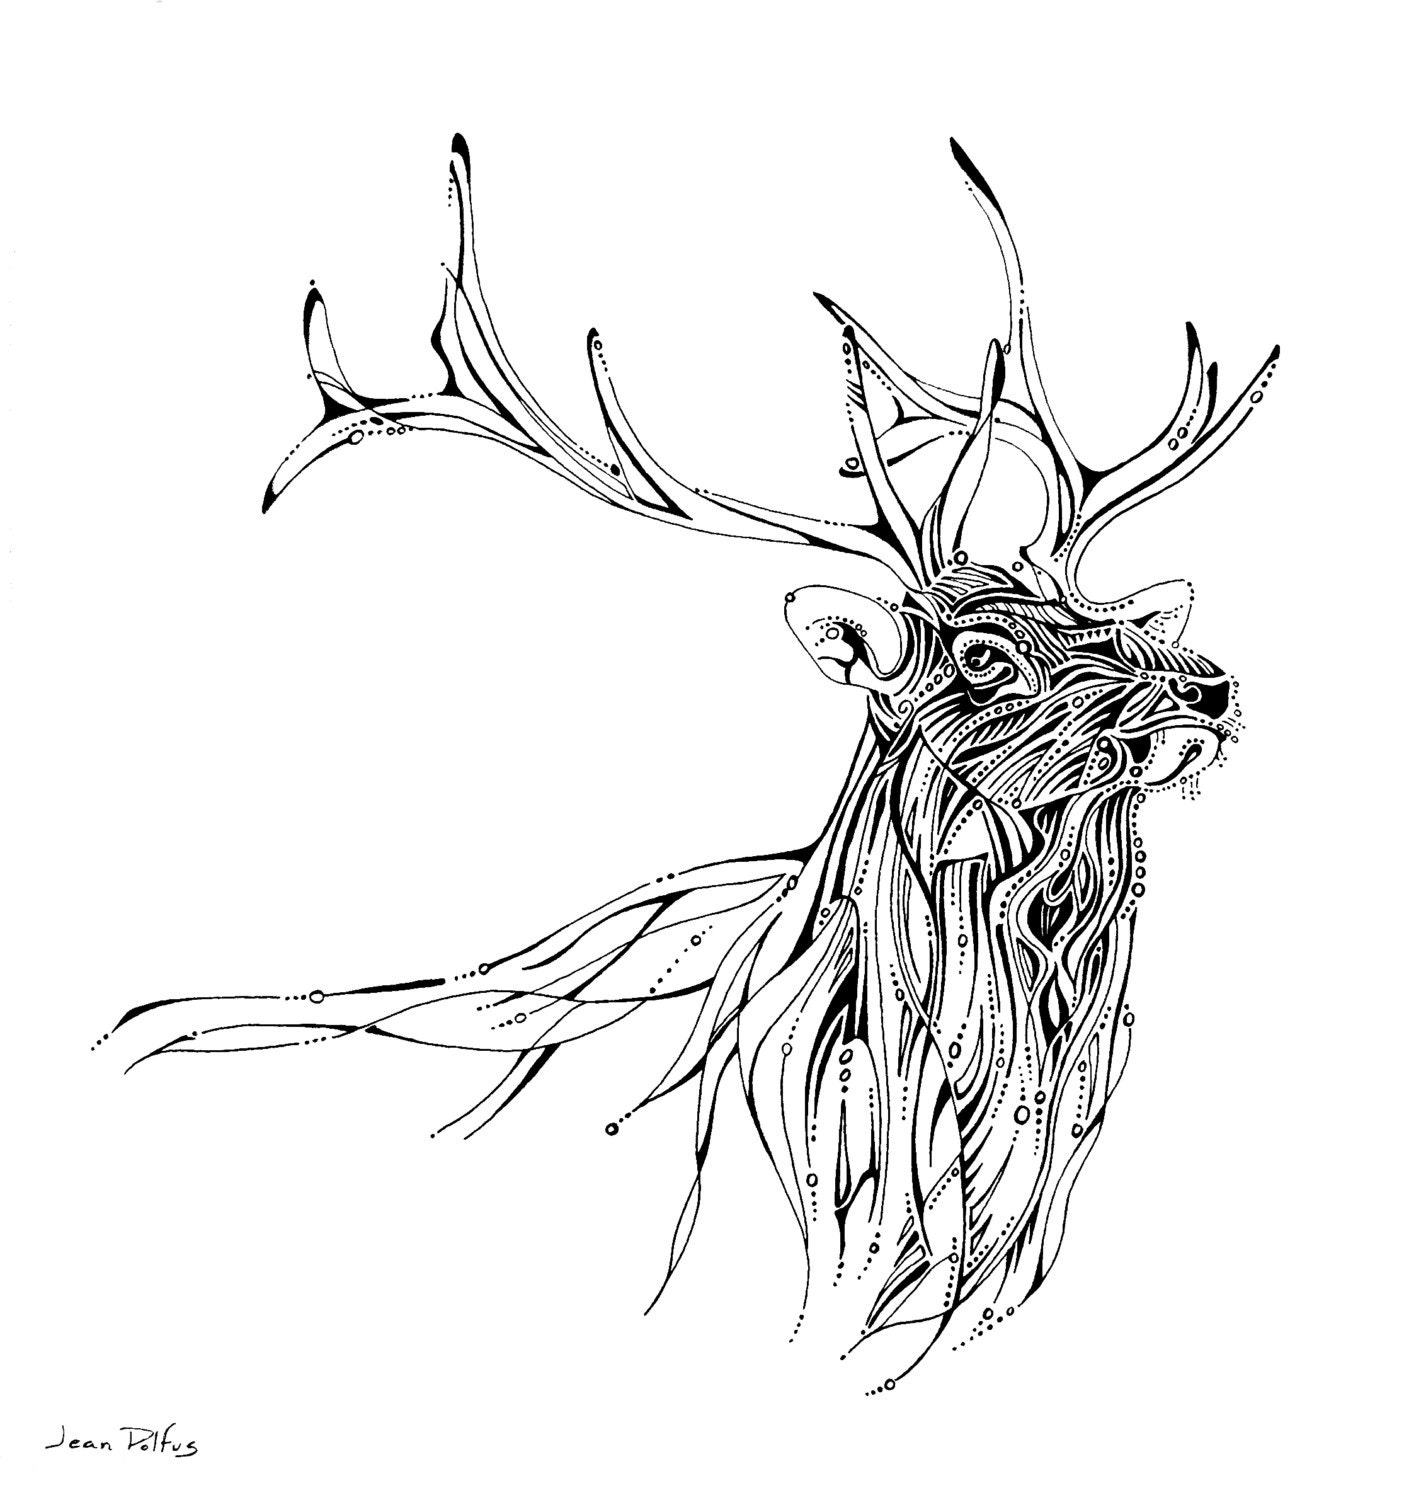 Line Drawings Of Animals Deer : Elk line drawing illustration wildlife artwork unique